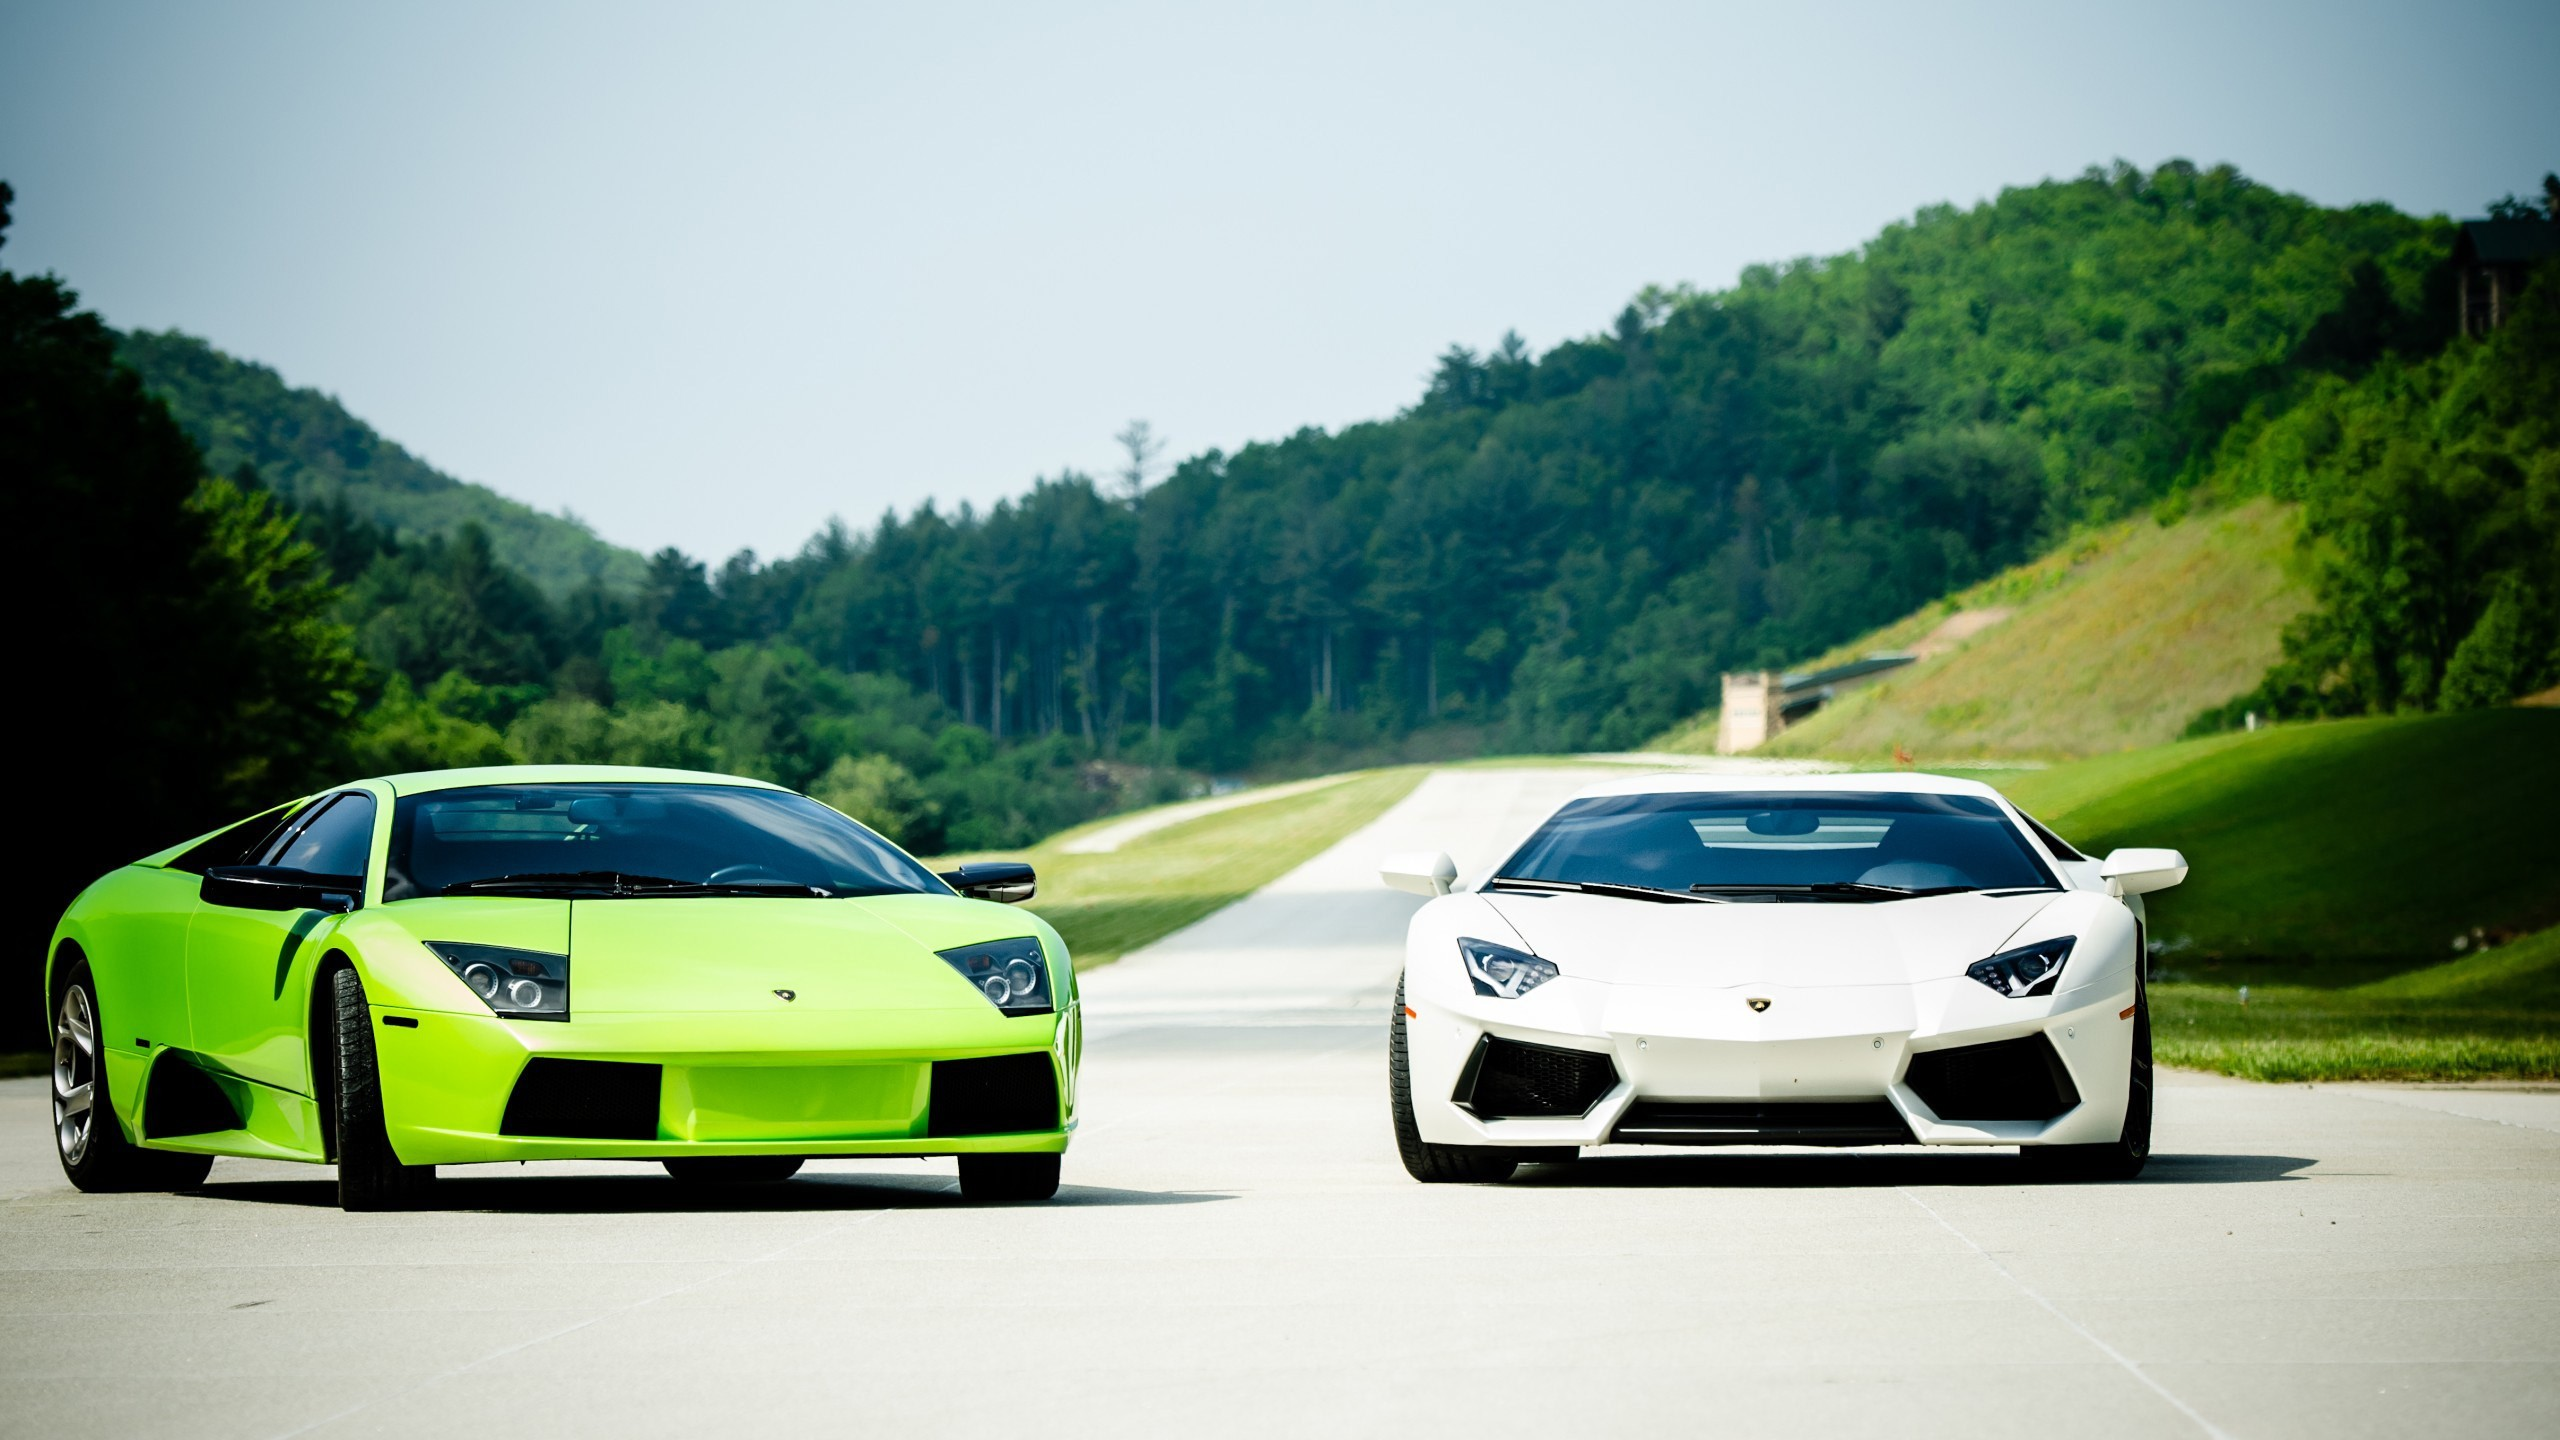 Cars Lamborghini Murcielago Aventador Wallpaper Allwallpaper In